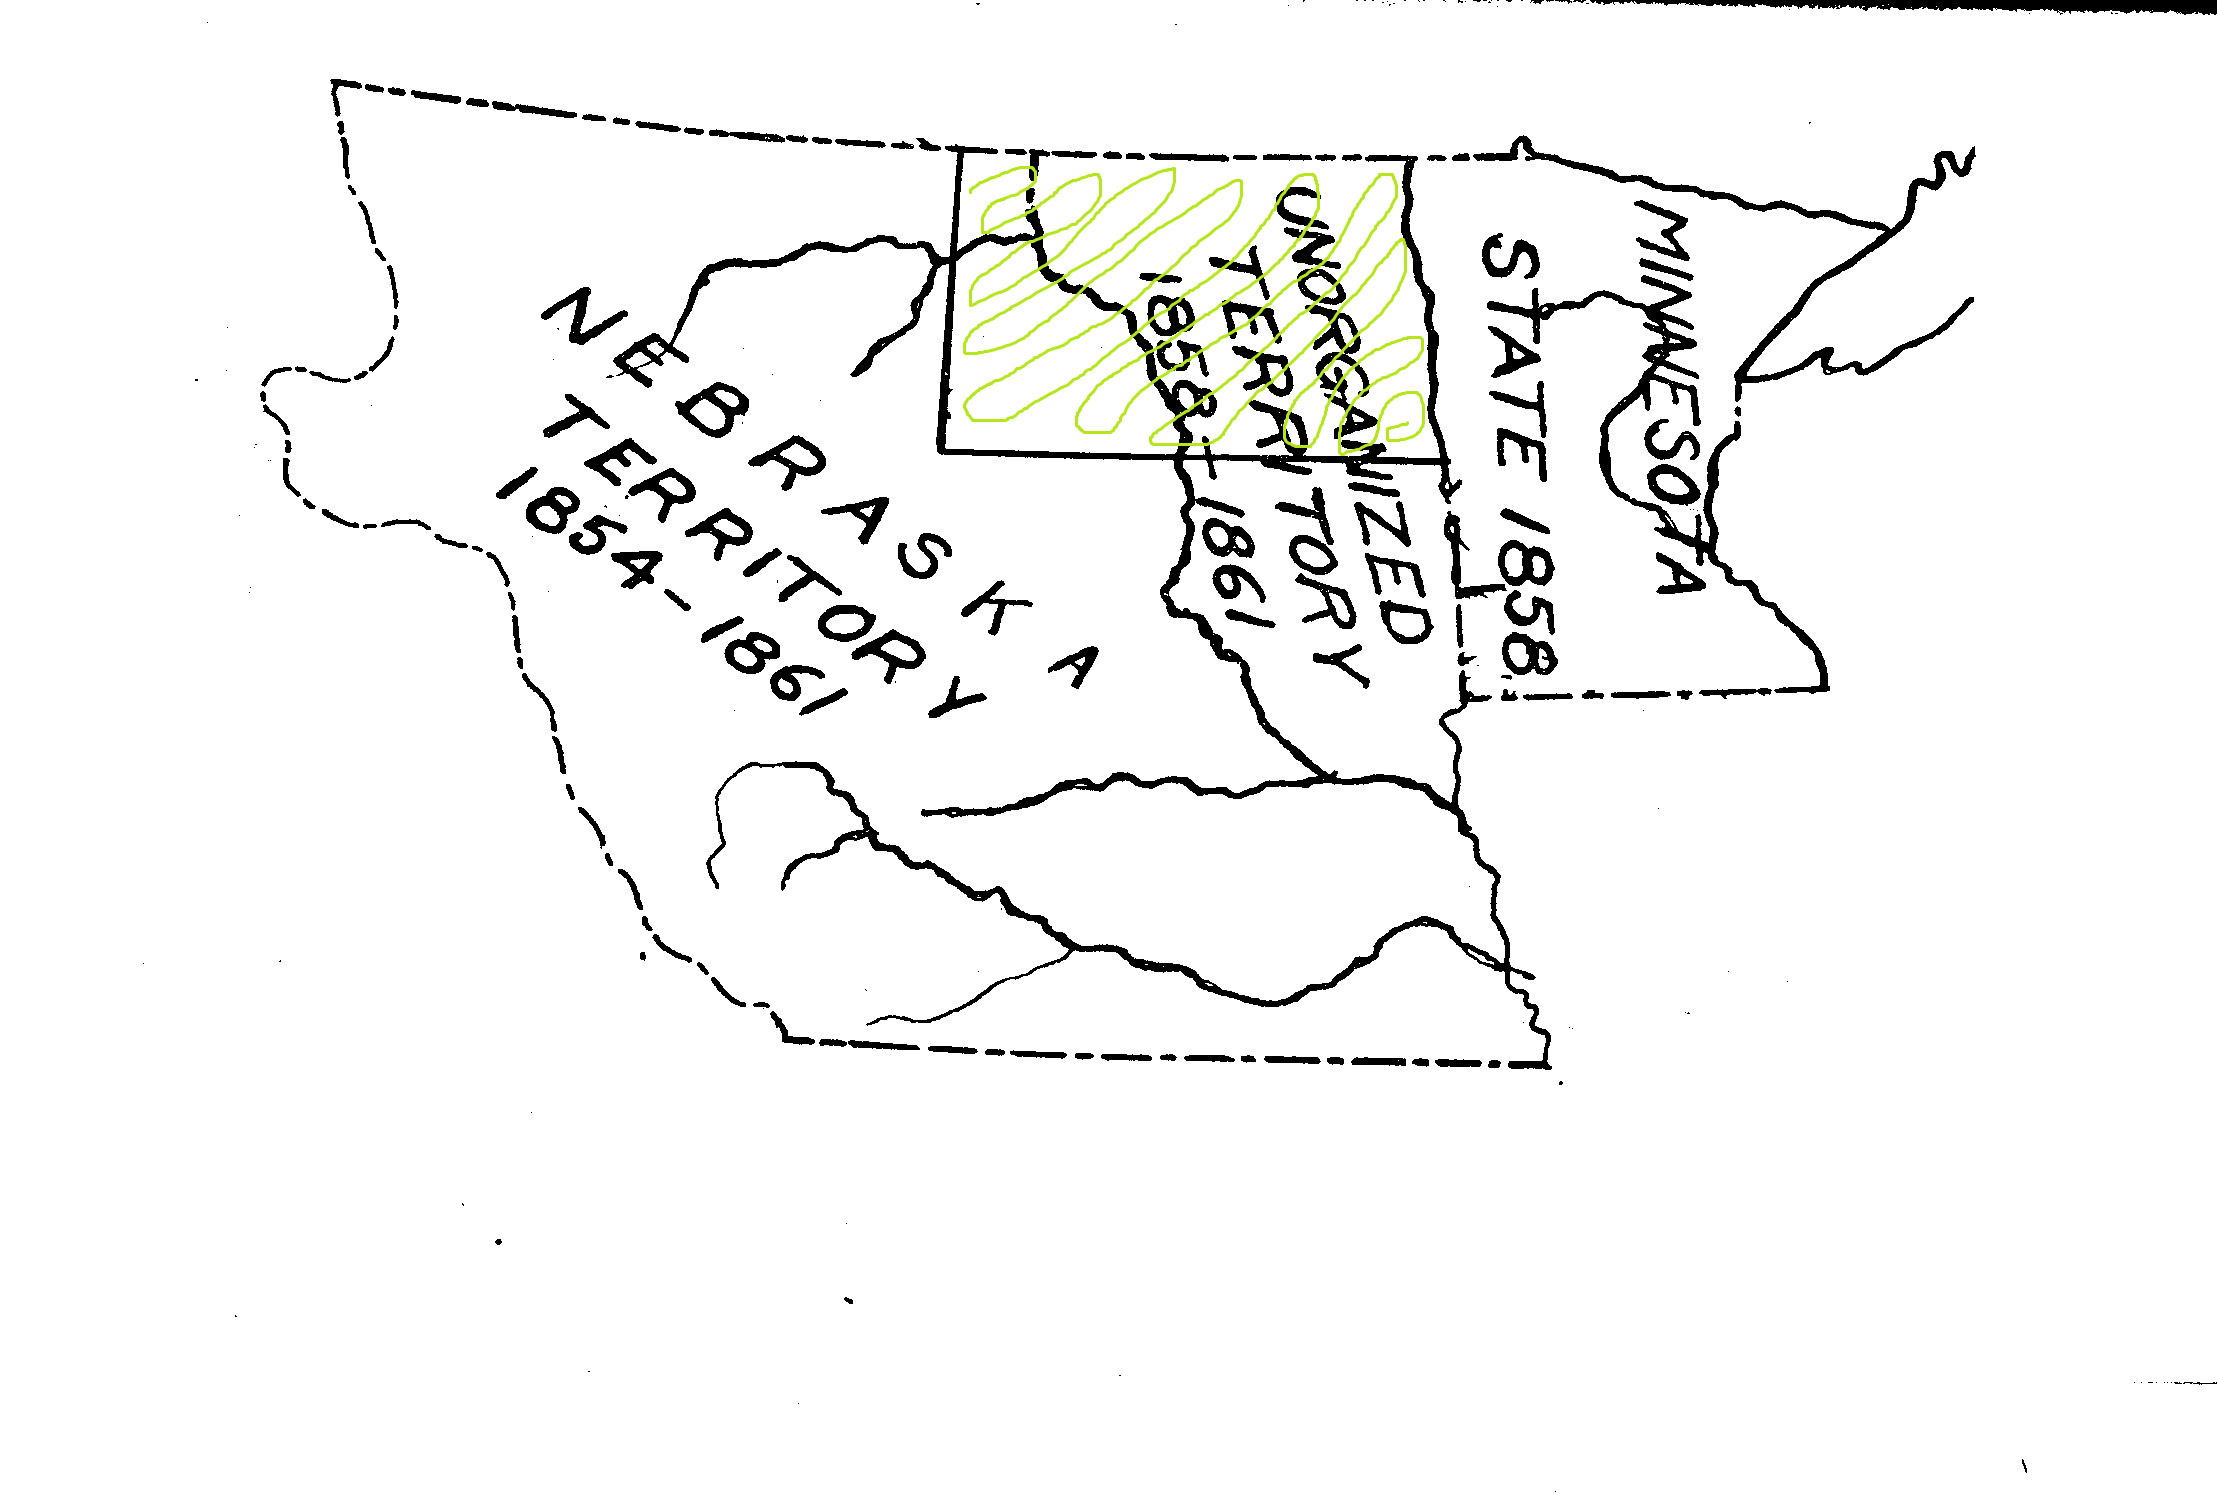 Nebraska Territory continued to claim the West River country until 1861. Minnesota became a state in 1858 without the area west of the Red River. The land between the Red River and the Missouri River was unorganized. It had no government and no representation in Congress.